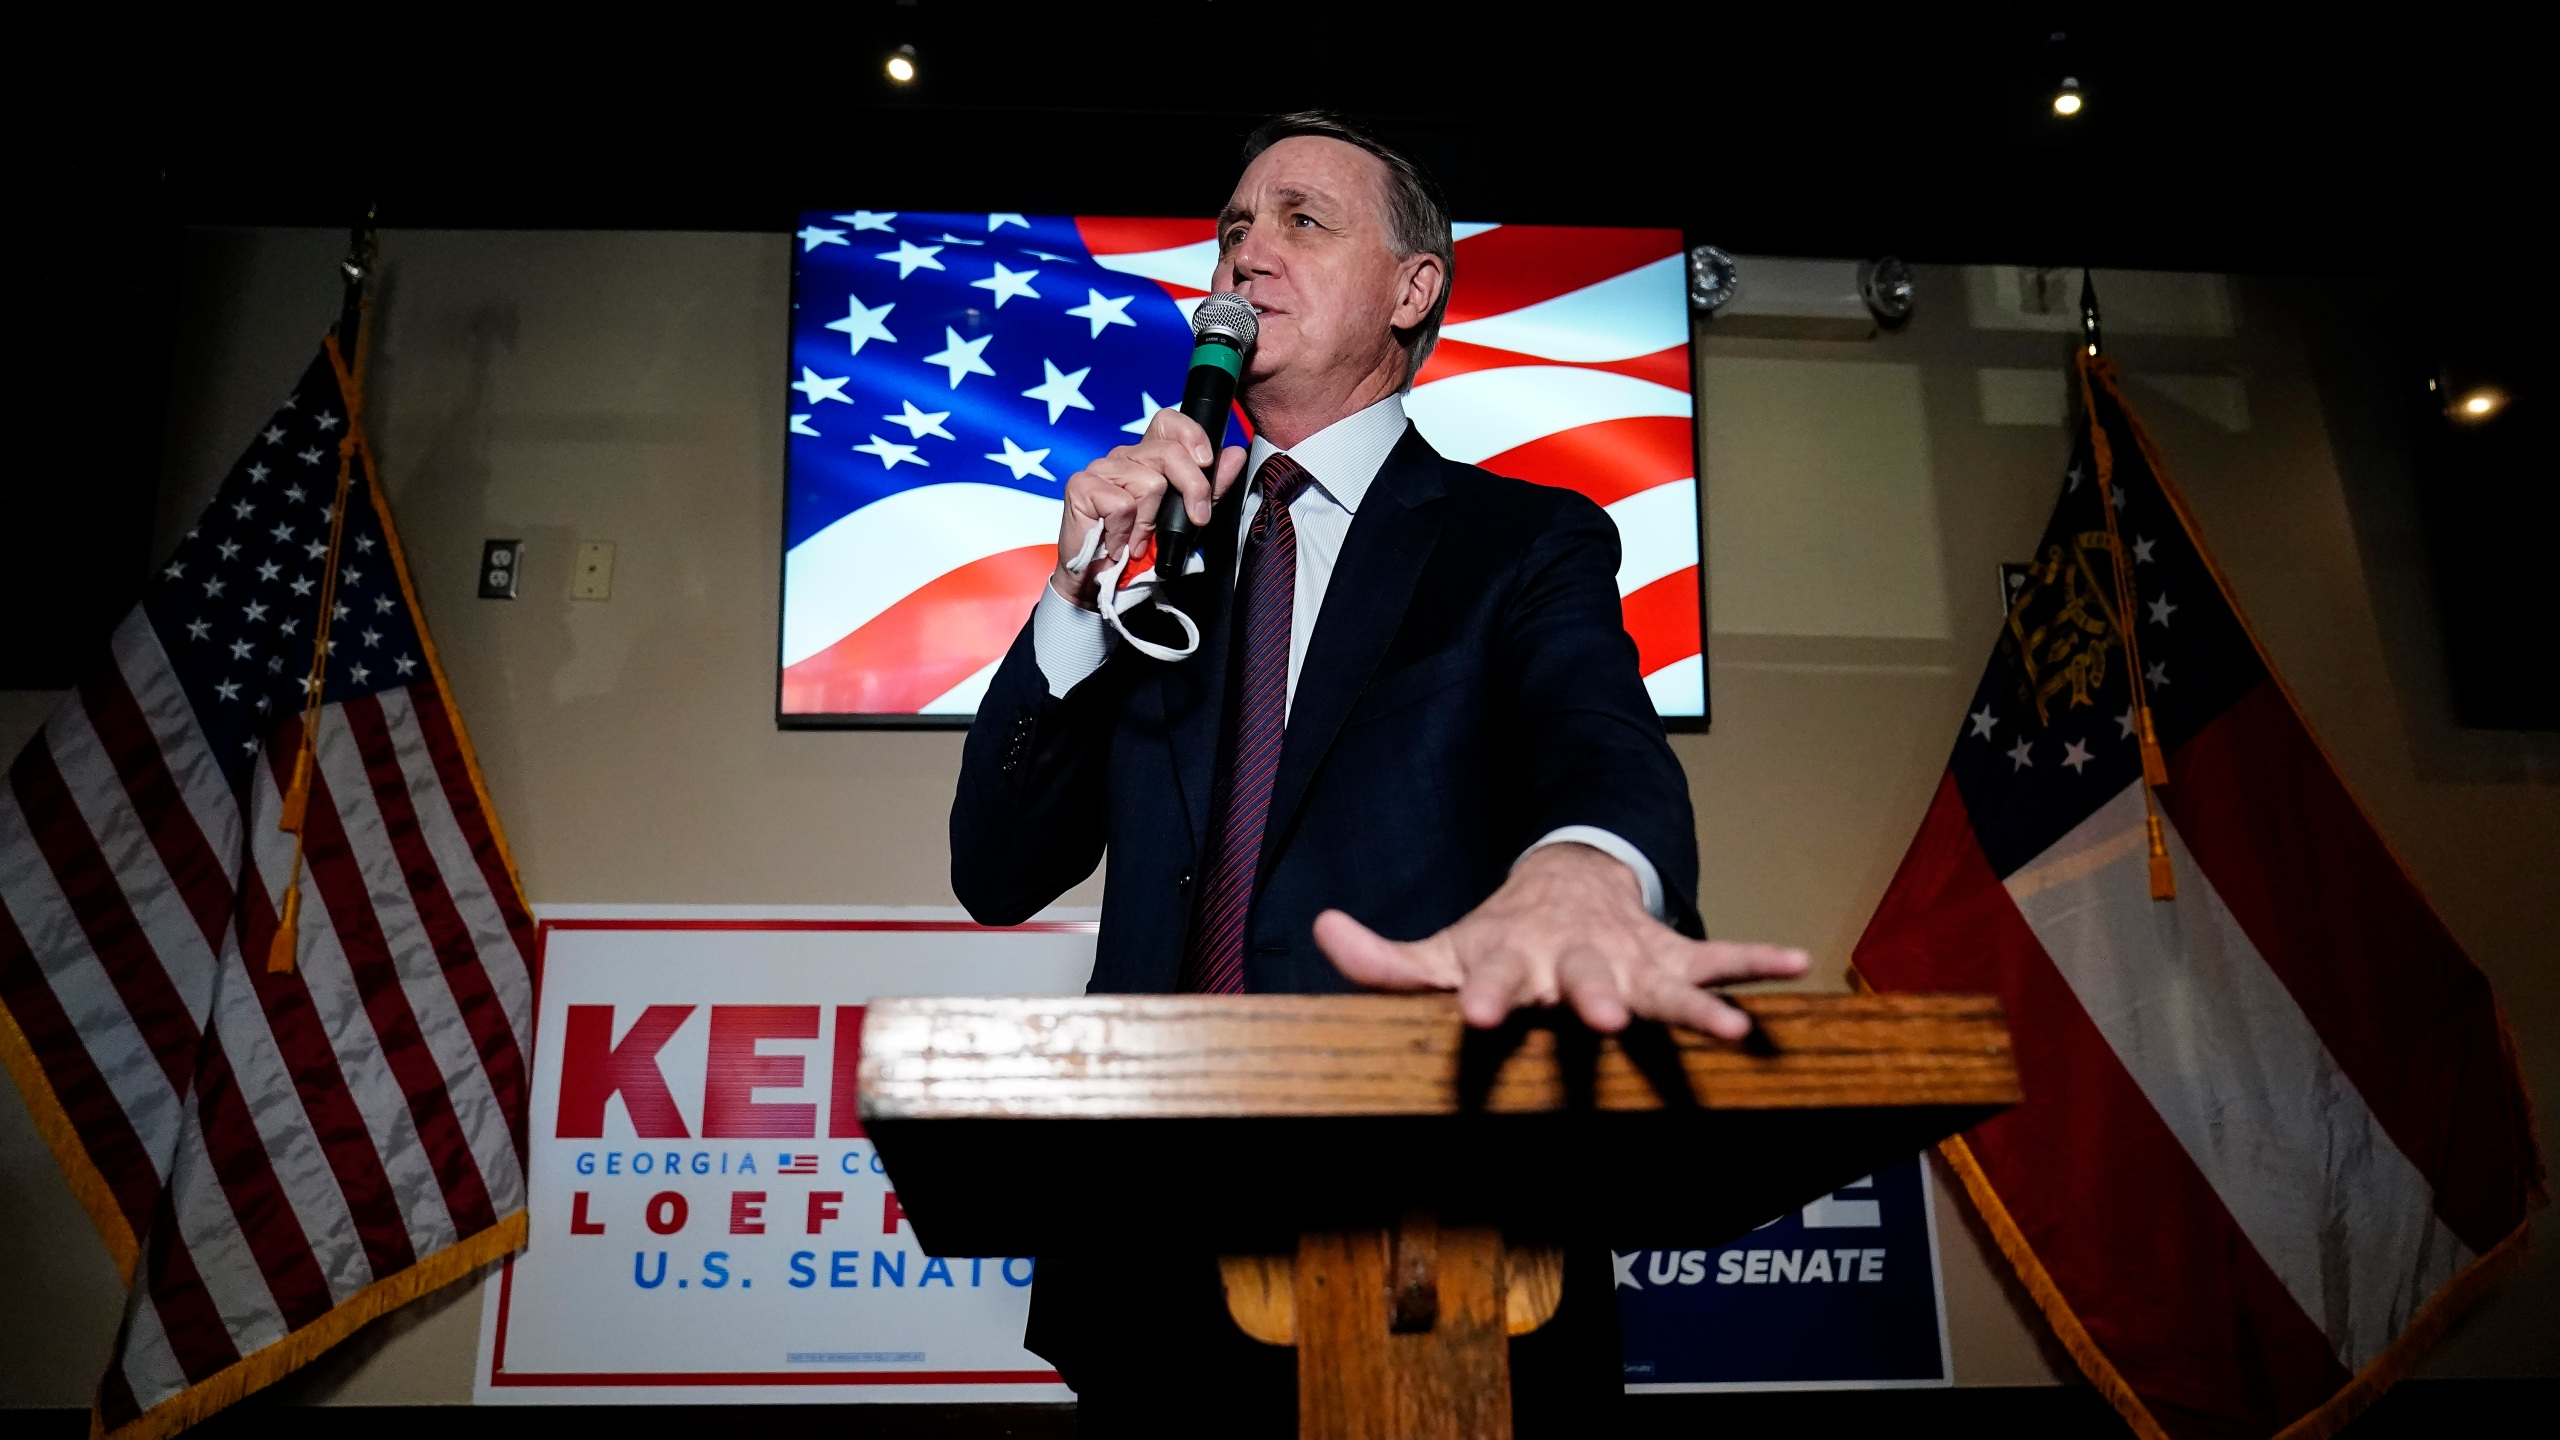 Republican candidate for U.S. Senate Sen. David Perdue speaks during a campaign rally on Friday, Nov. 13, 2020, in Cumming, Ga. Perdue and Democratic candidate Jon Ossoff are in a runoff election for the Senate seat in Georgia. (AP Photo/Brynn Anderson)